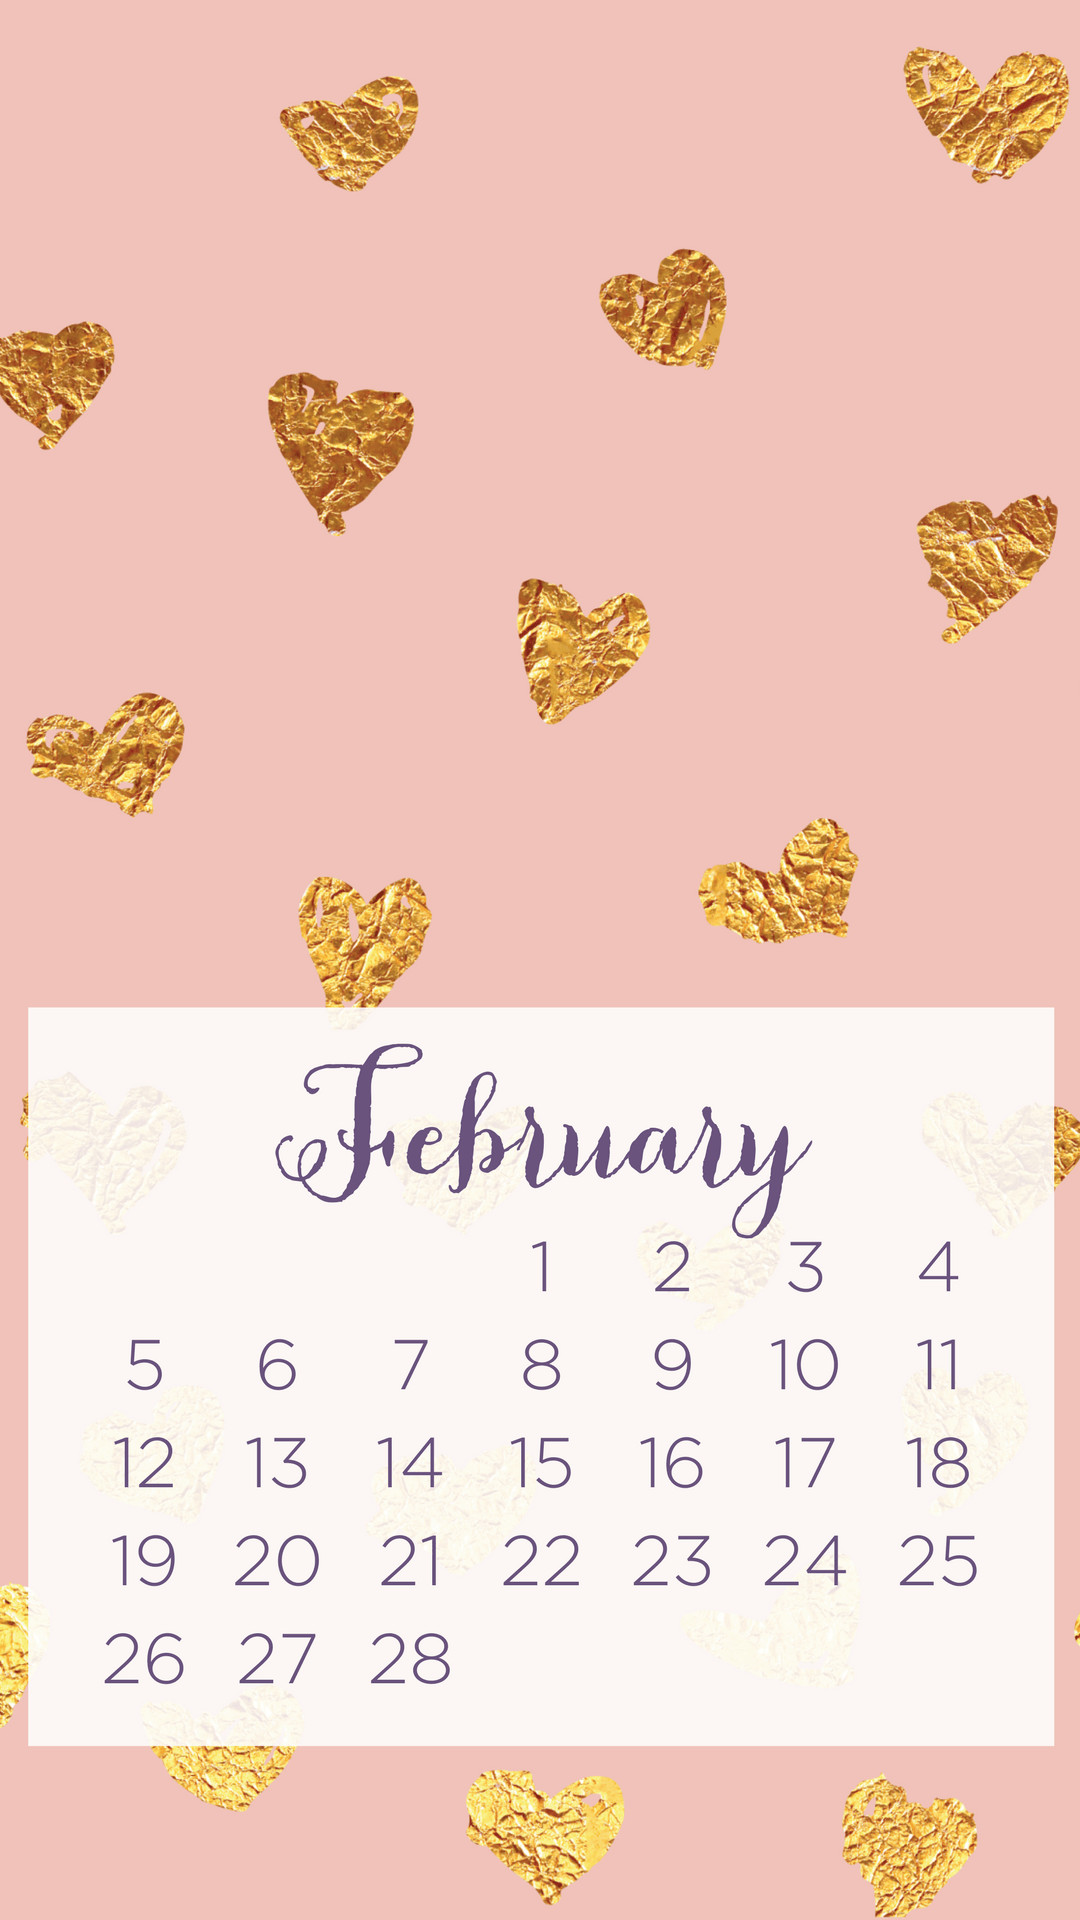 Click to download the pink background February calendar wallpaper.